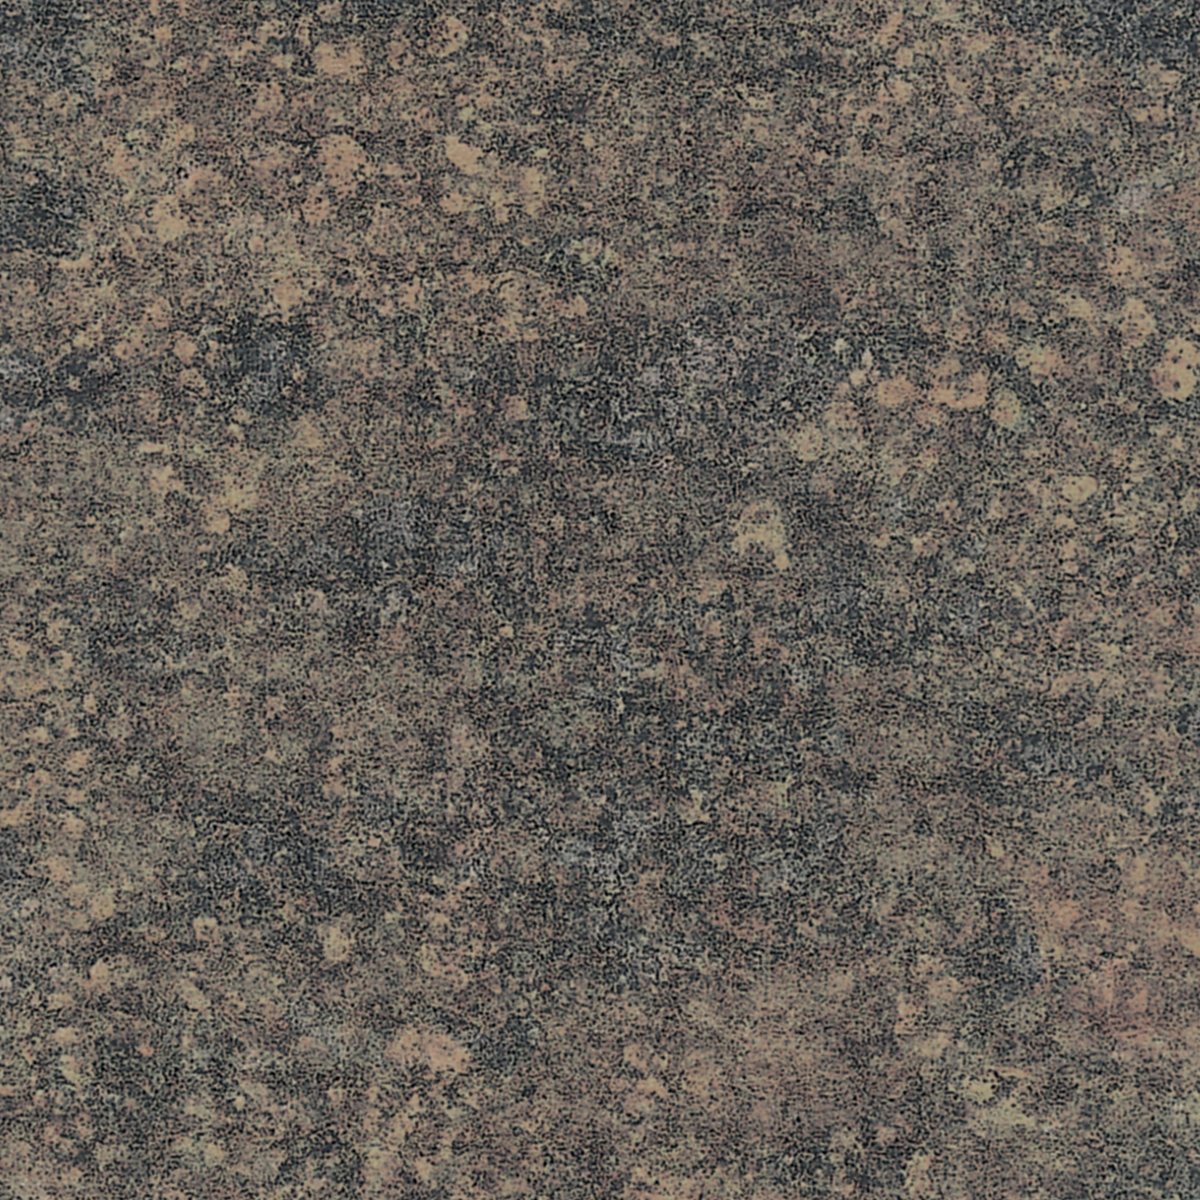 3447 Mineral Olivine - Discontinued - Formica